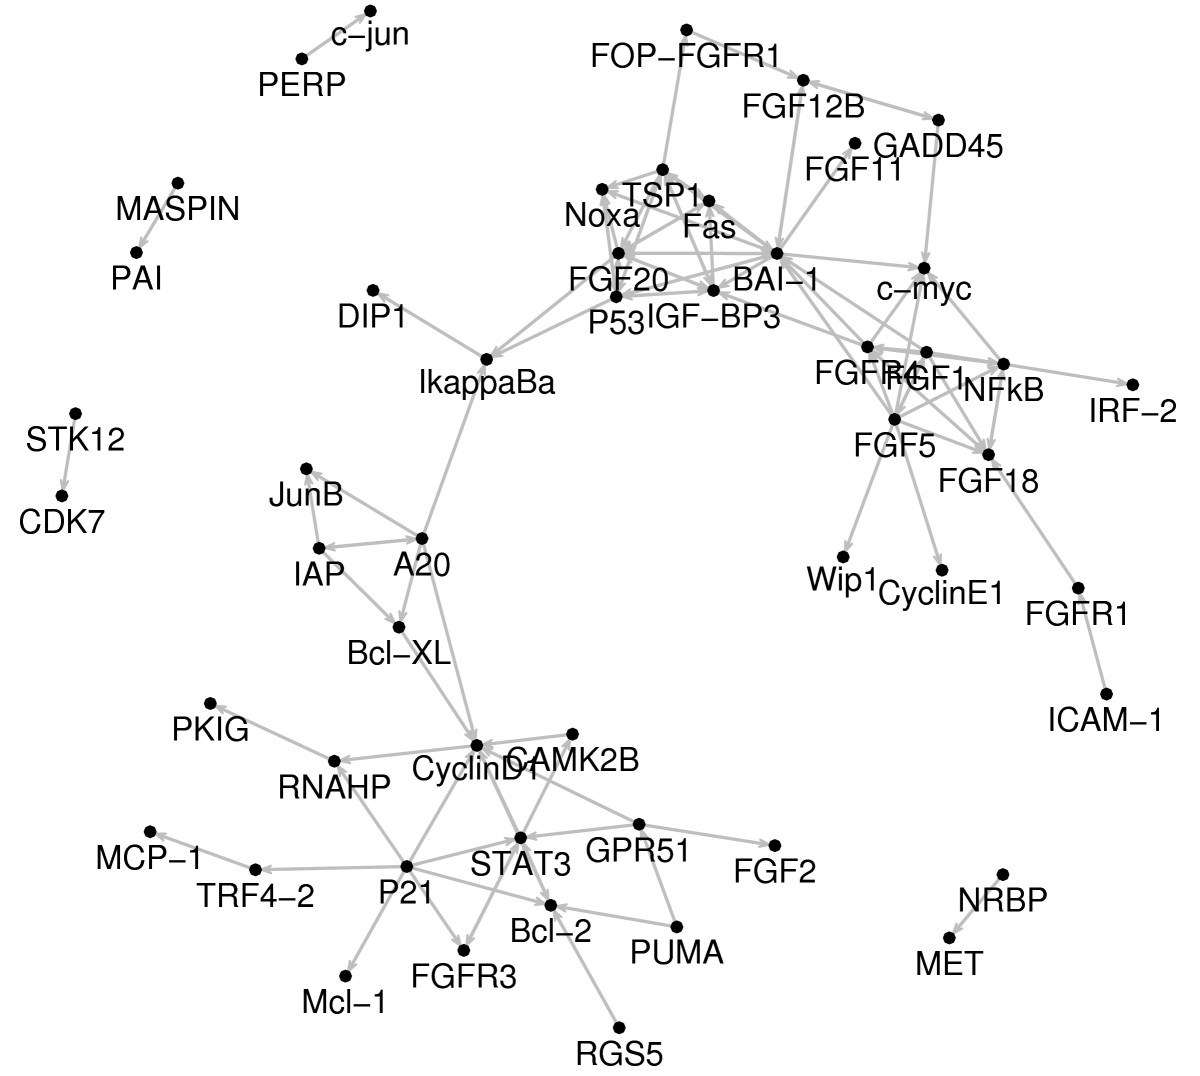 https://static-content.springer.com/image/art%3A10.1186%2F1752-0509-1-39/MediaObjects/12918_2007_Article_39_Fig5_HTML.jpg